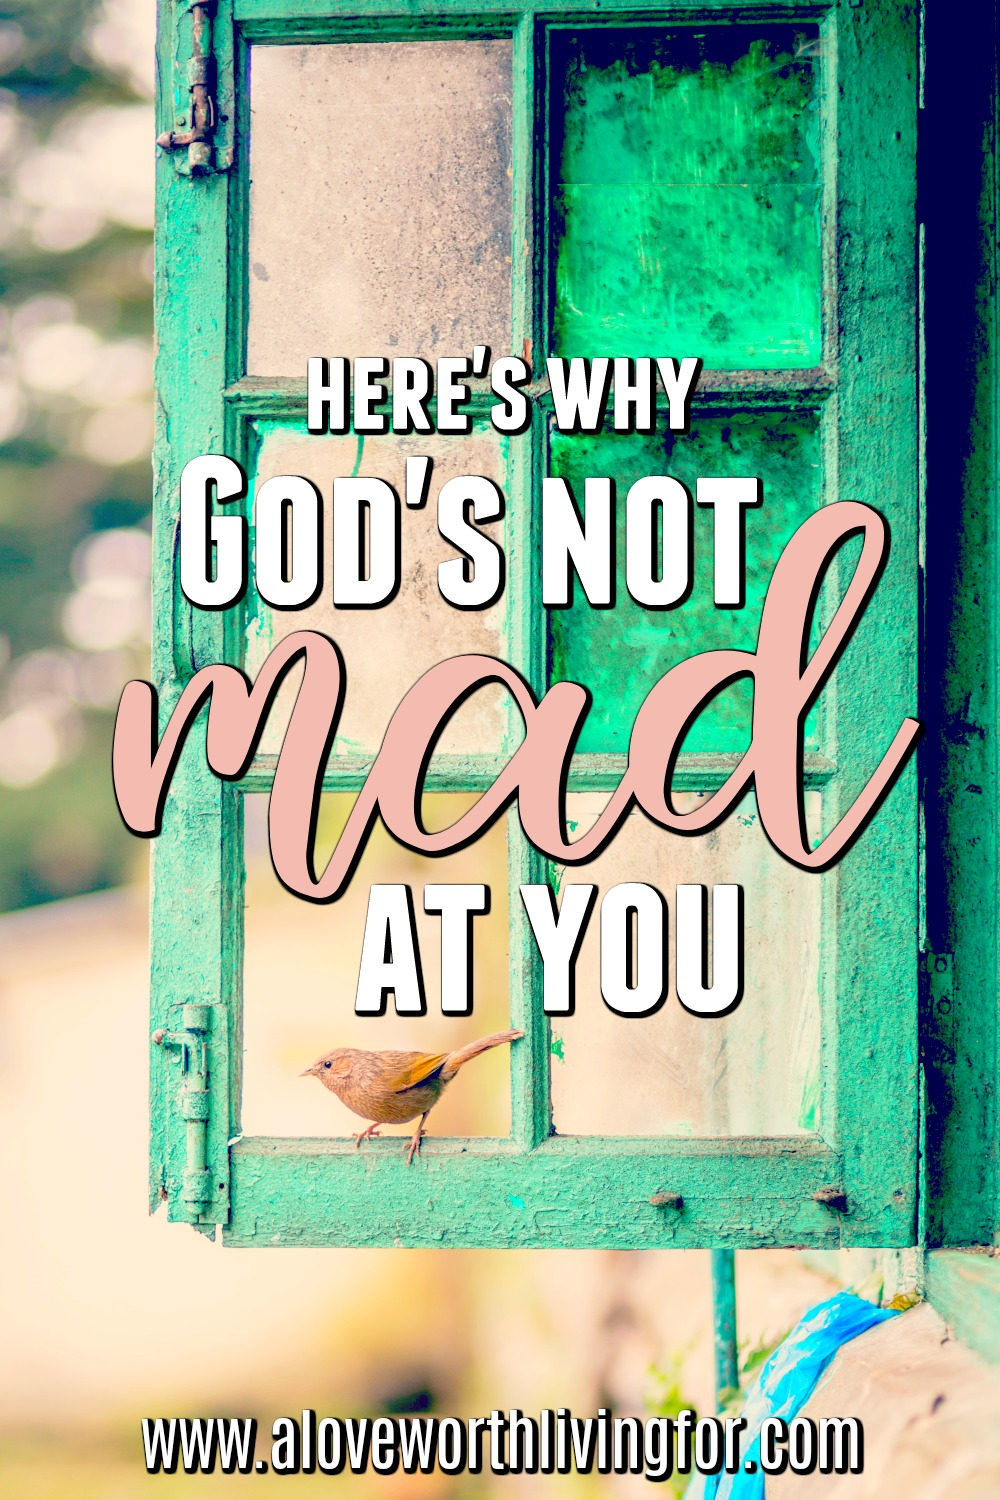 We tend to assume that God behaves the way we or our authority figures do. We assume He's frustrated by our progress (or lack thereof) in life, but is that the case? Is God mad at you? Here is some proof that He is not mad or disappointed in you.